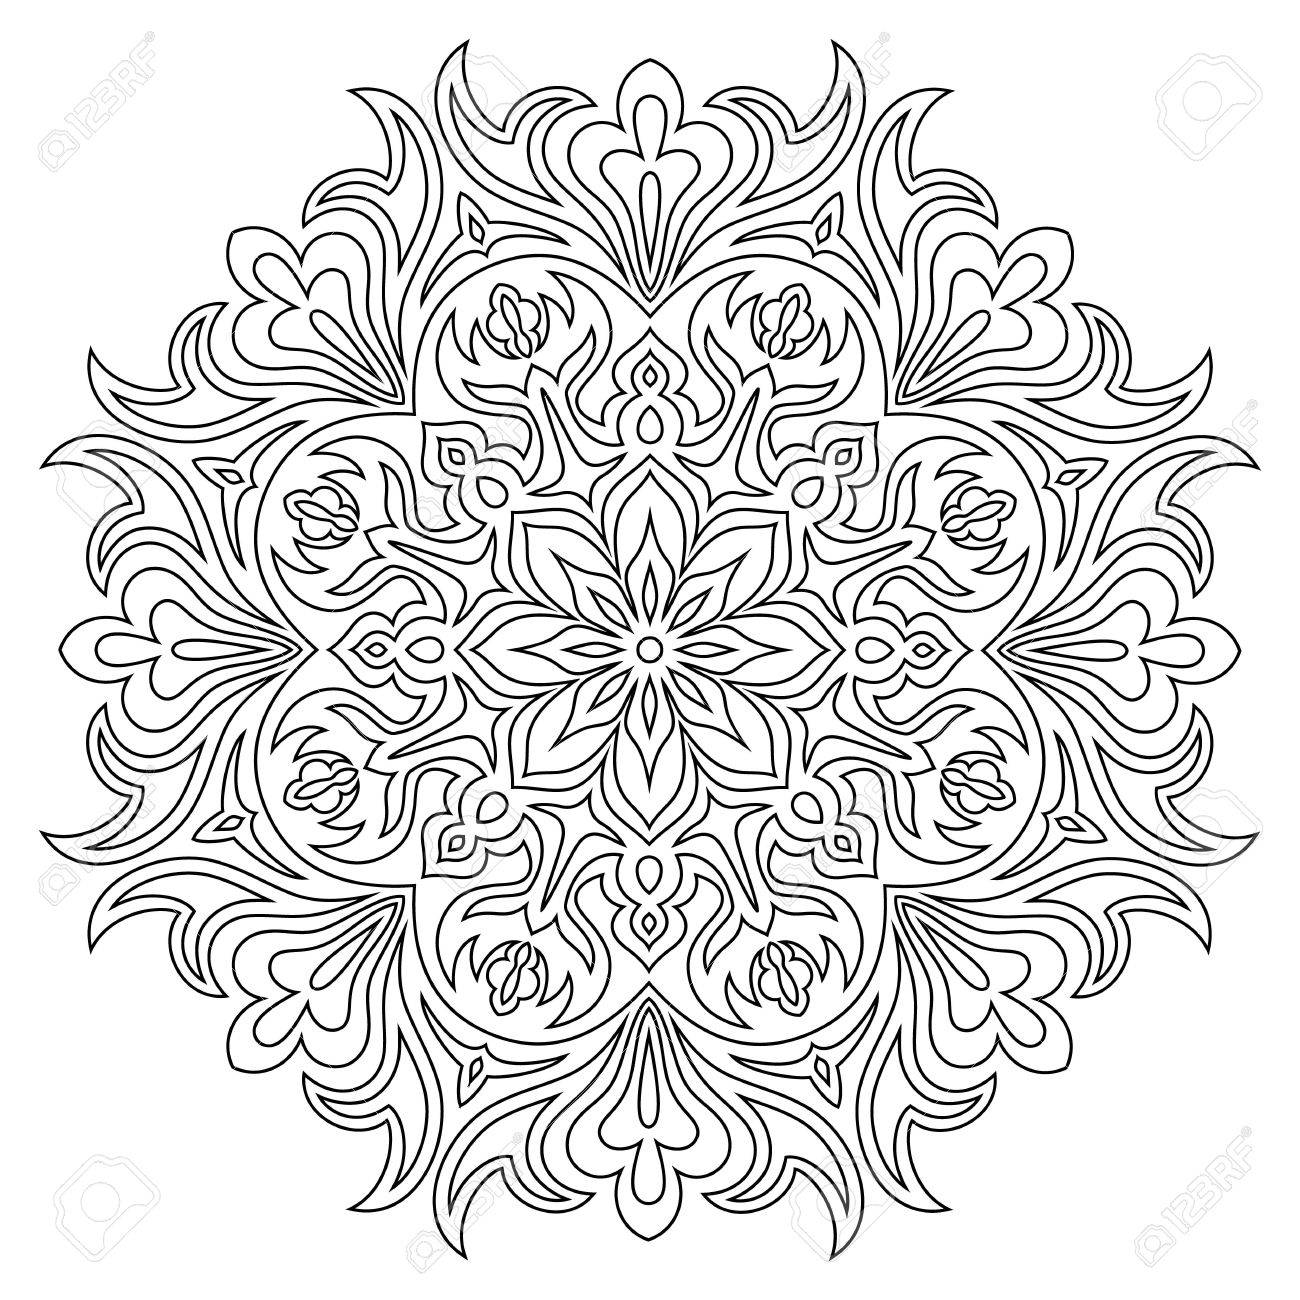 Coloriage Anti Stress Magazine.Ethnic Mandala Symbol For Coloring Book Anti Stress Therapy